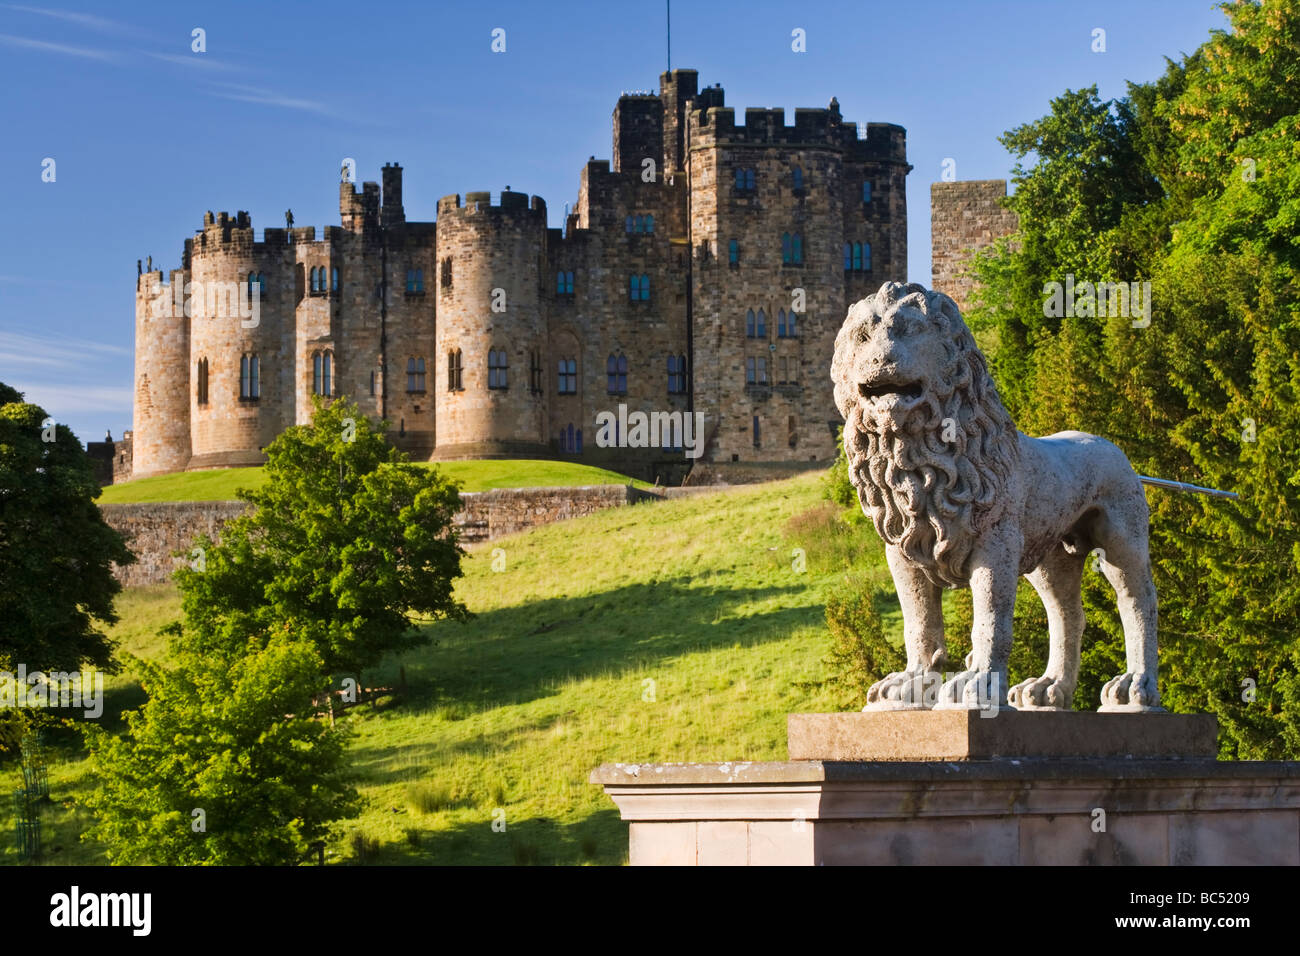 Carved lion on a bridge over the river Aln leading to the town of Alnwick Northumberland, England. Behind is Alnwick - Stock Image